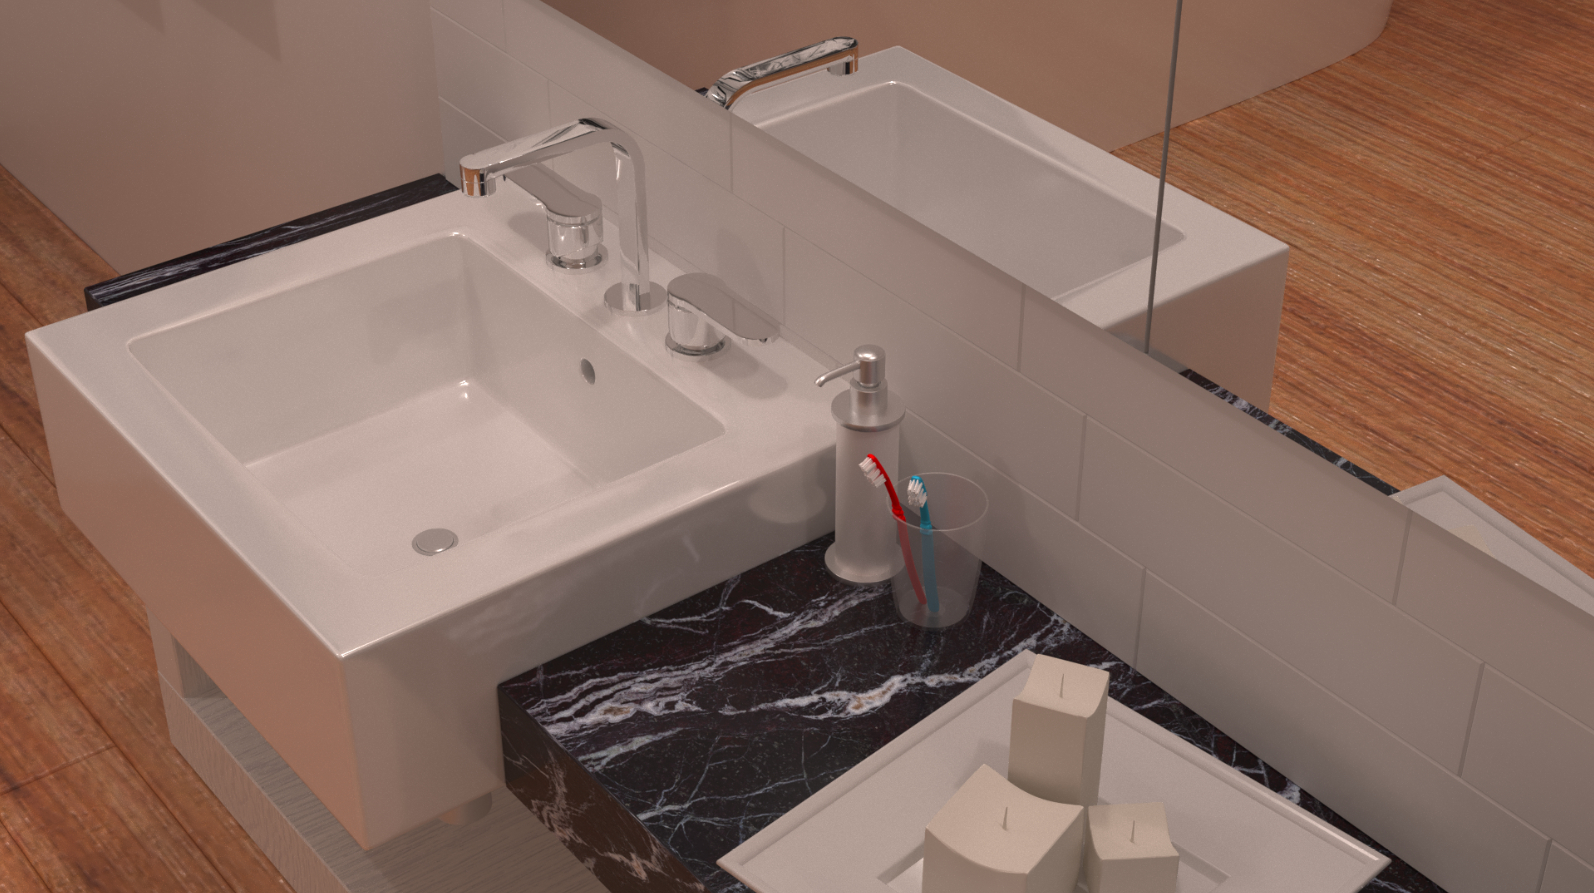 Visualization of the bathroom in 3d max corona render image